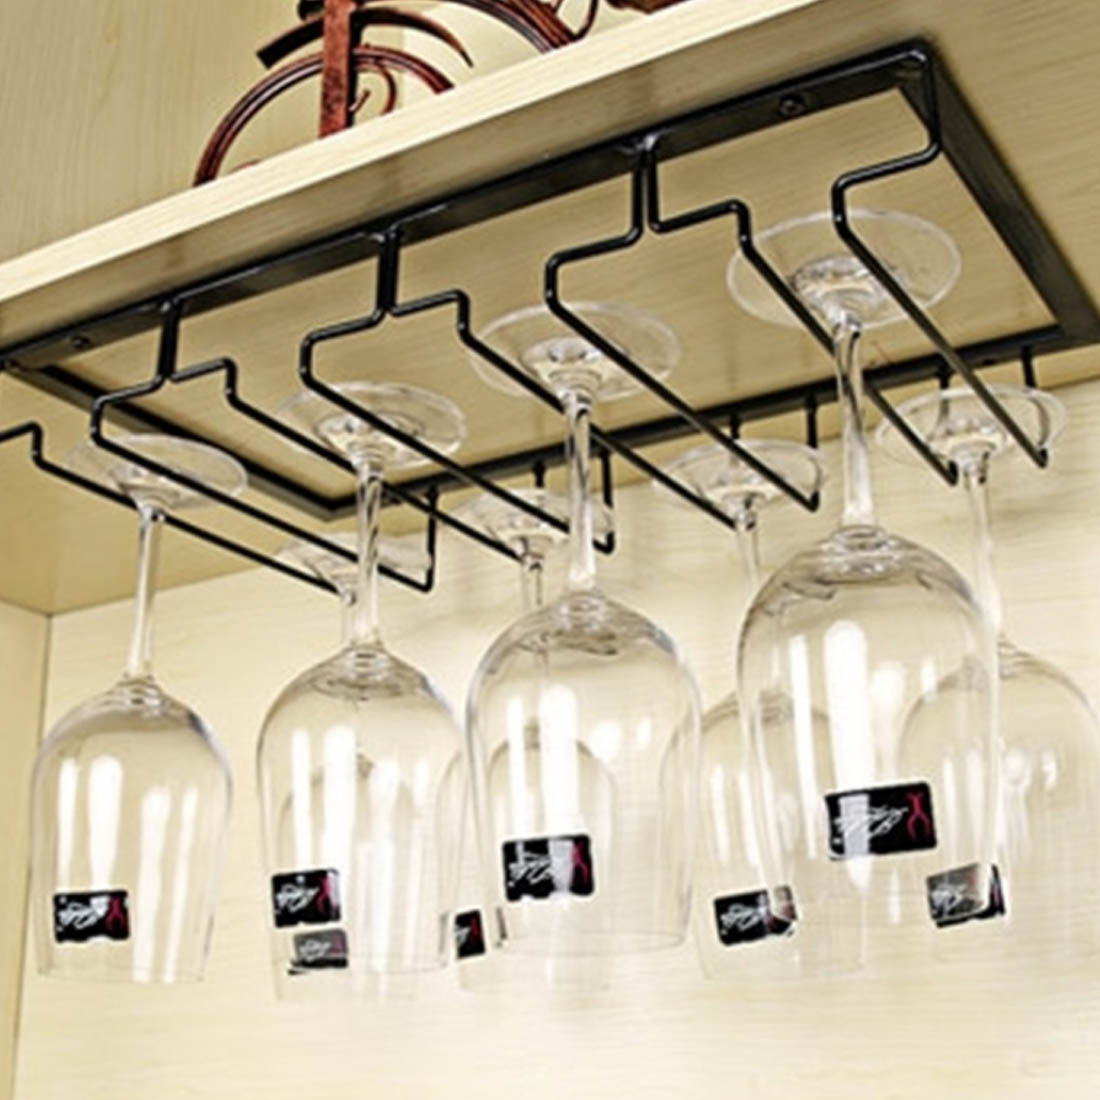 4 Rows / 3 Rows Hanging Wine Cup Rack Glass Cups Holder Metal Iron Craft Steamware Decor Kitchen Storage Racks Holders